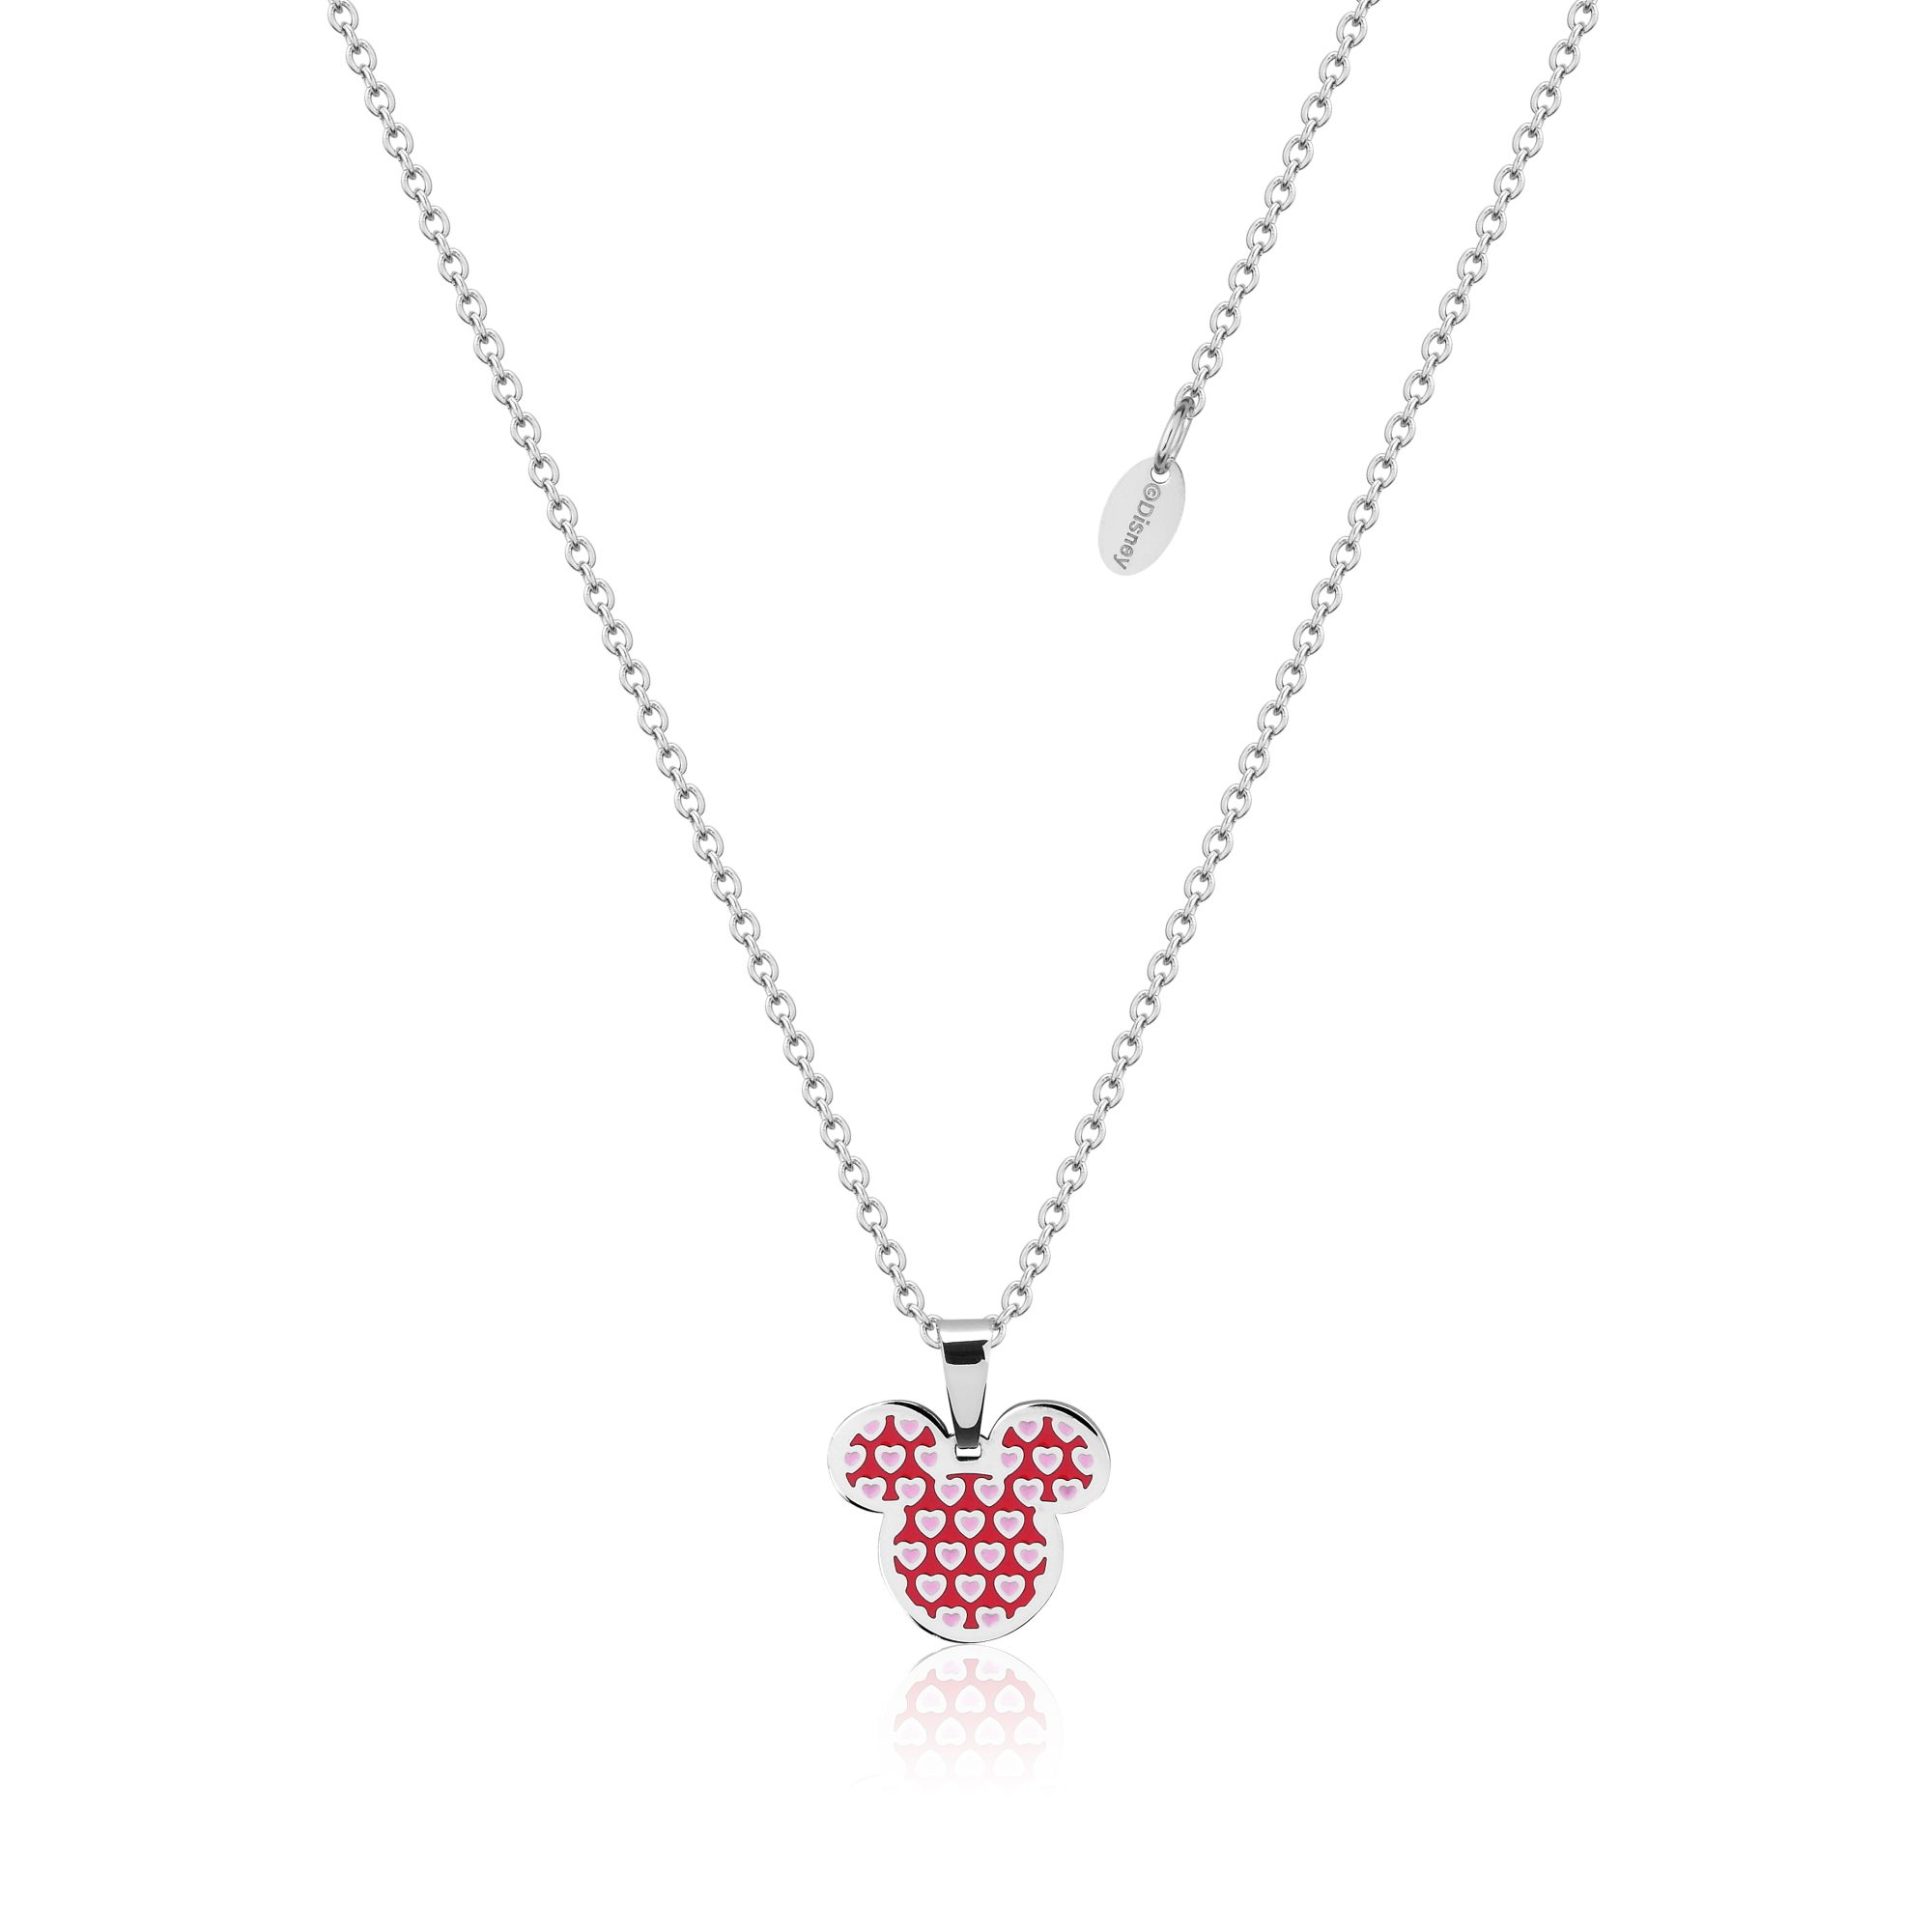 DISNEY Stainless Steel 47cm Minnie Mouse Pink Heart Pendant on Chain